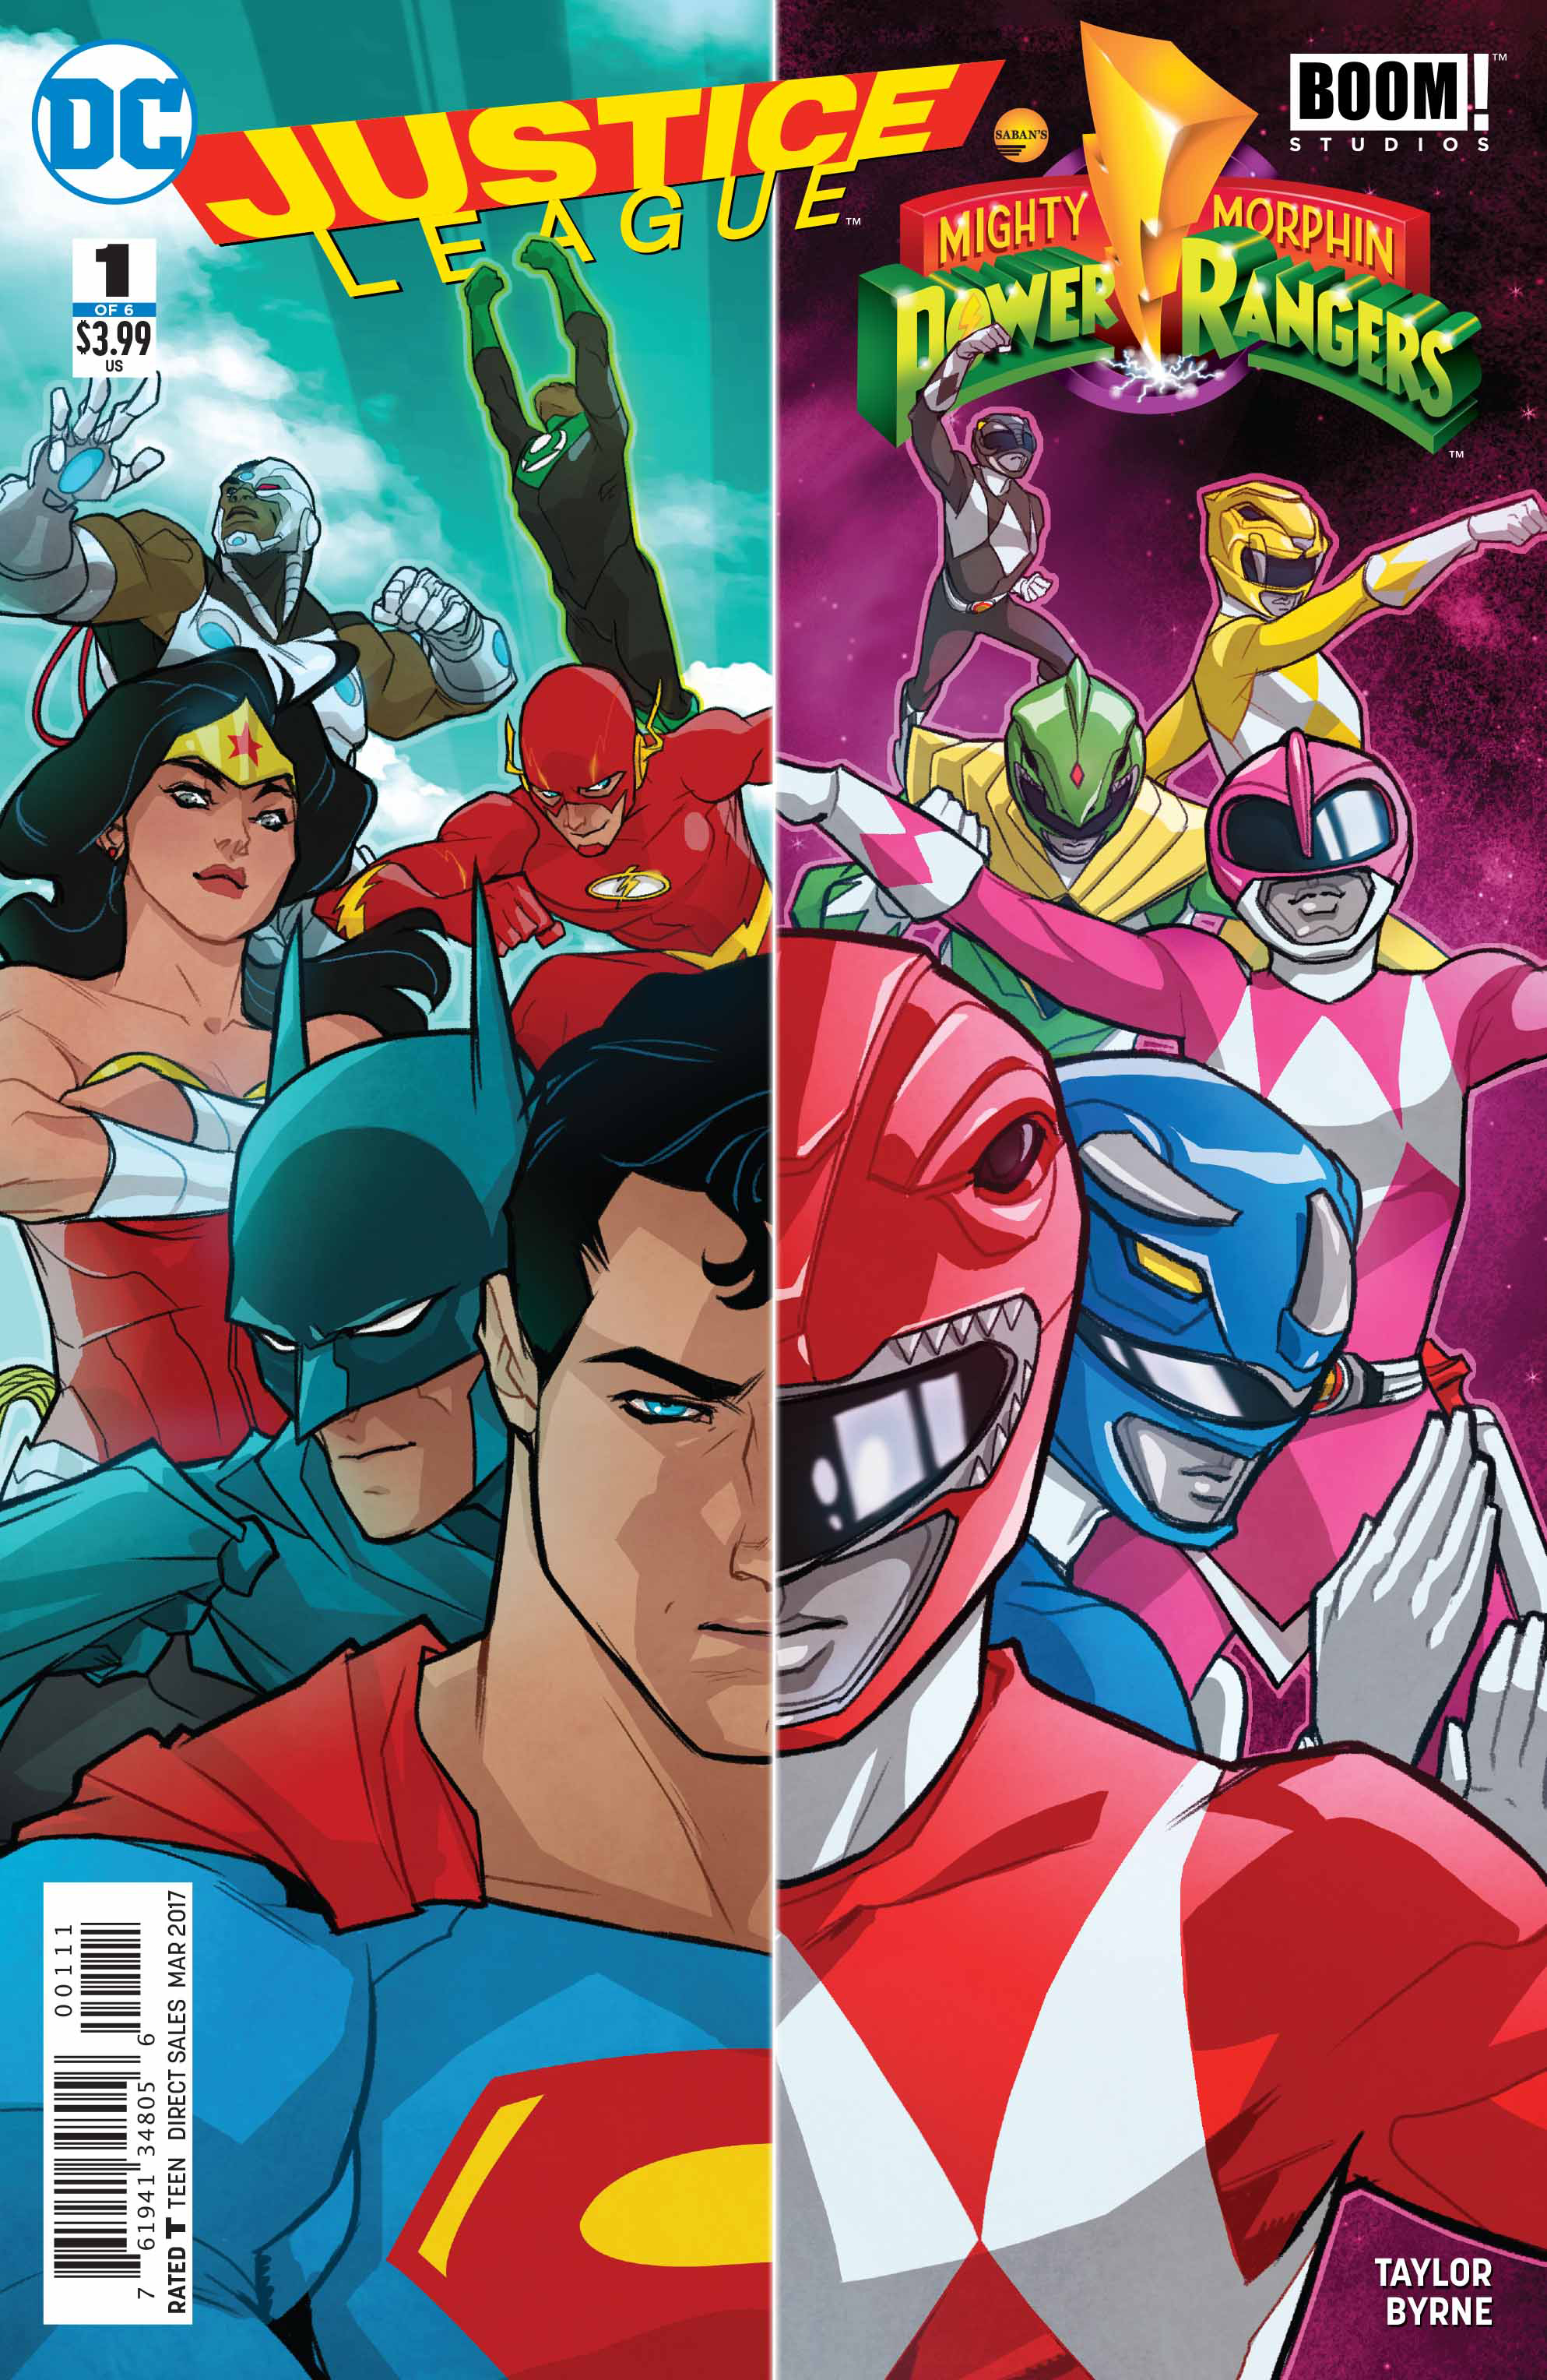 JUSTICE LEAGUE POWER RANGERS #1